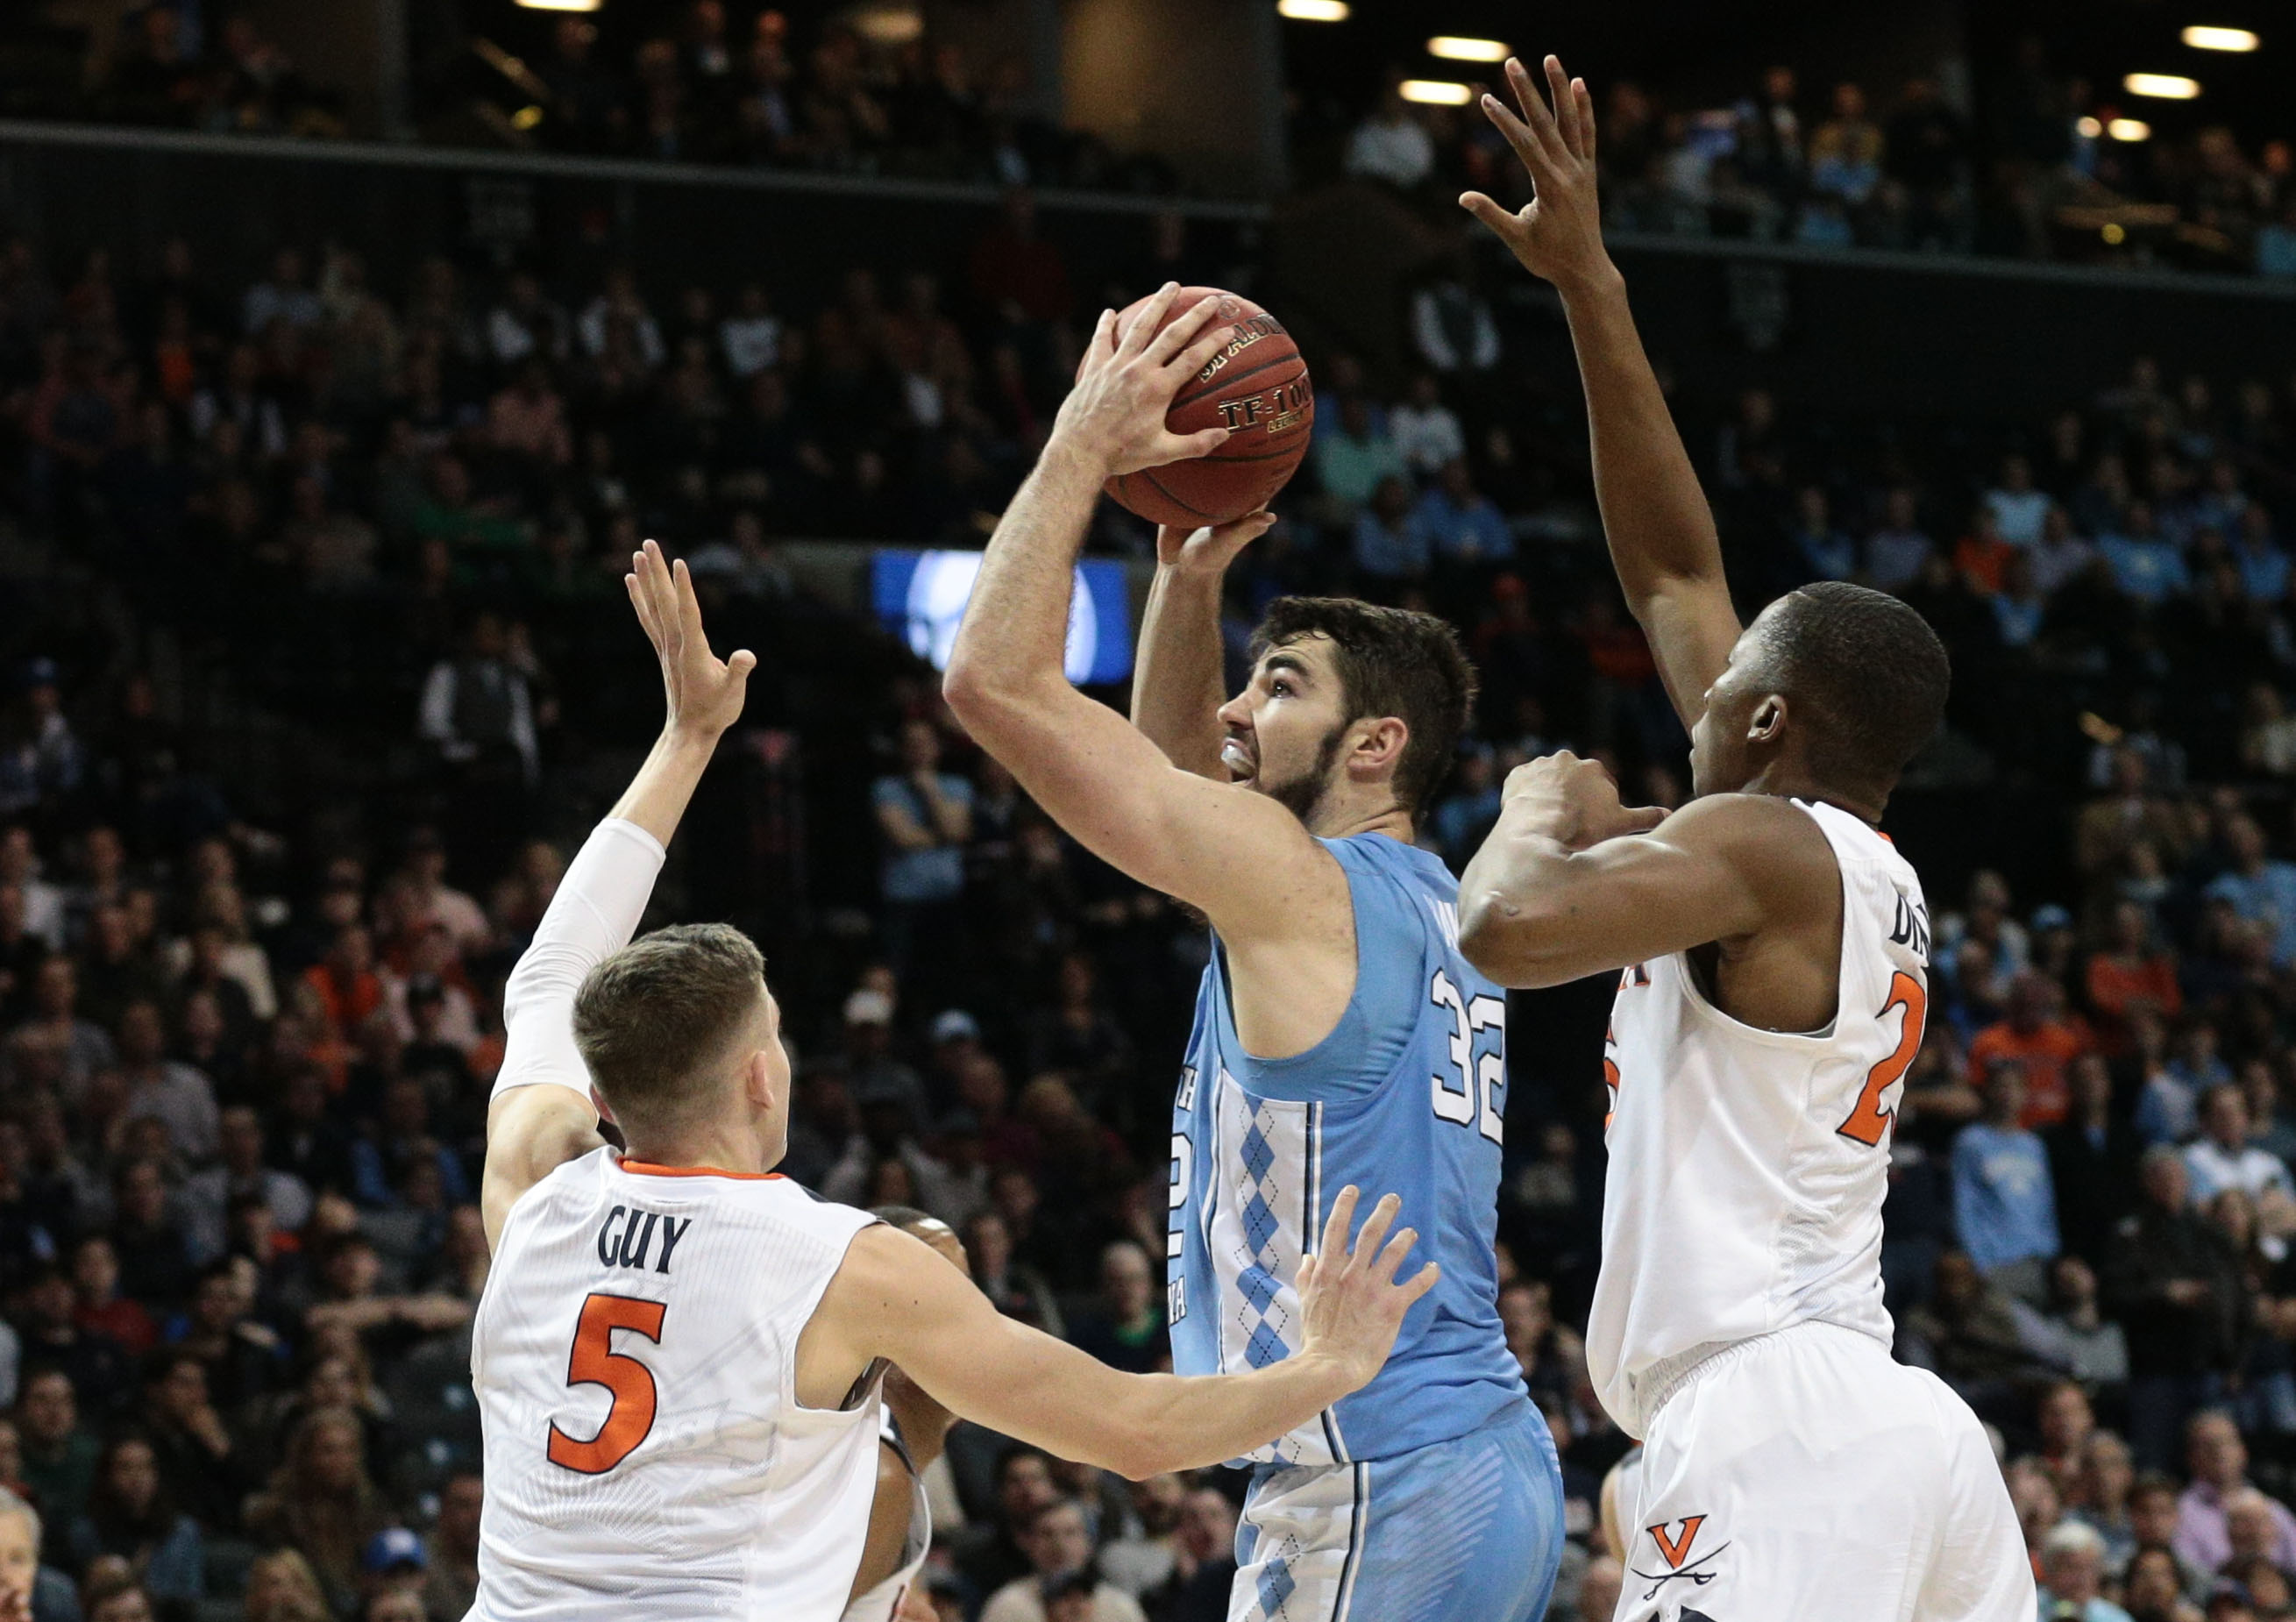 NCAA tournament preview: No. 2 North Carolina